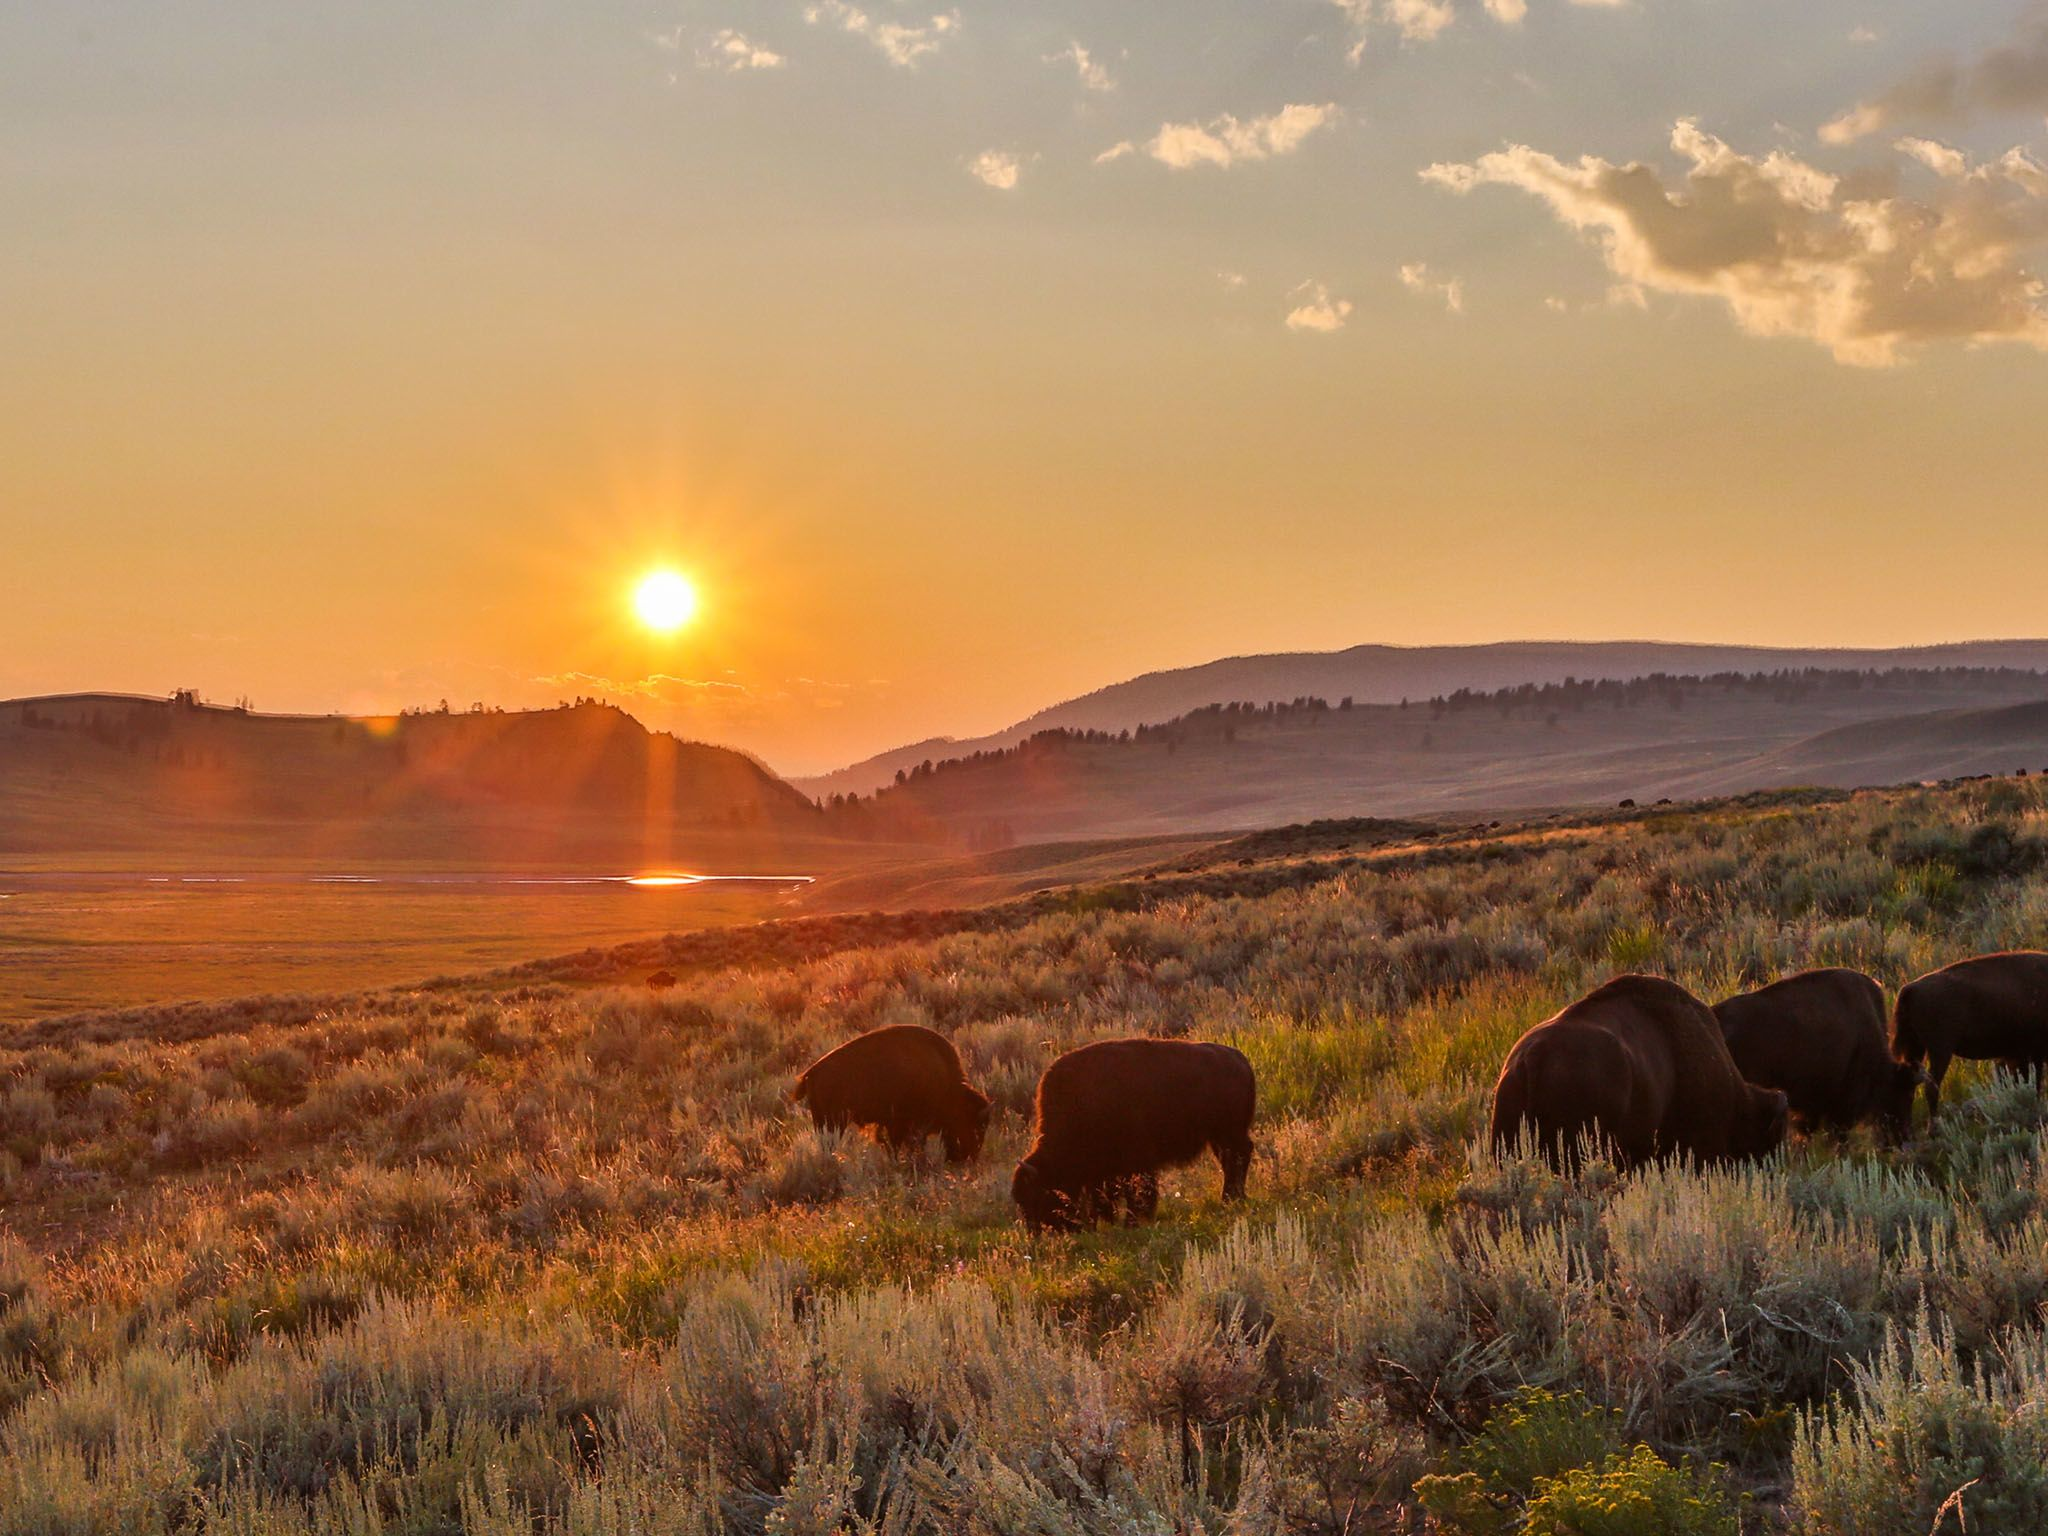 Yellowstone, WYO.: Bison herd in summer evening light during the bison rut. This image is from... [Photo of the day - 十一月 2015]